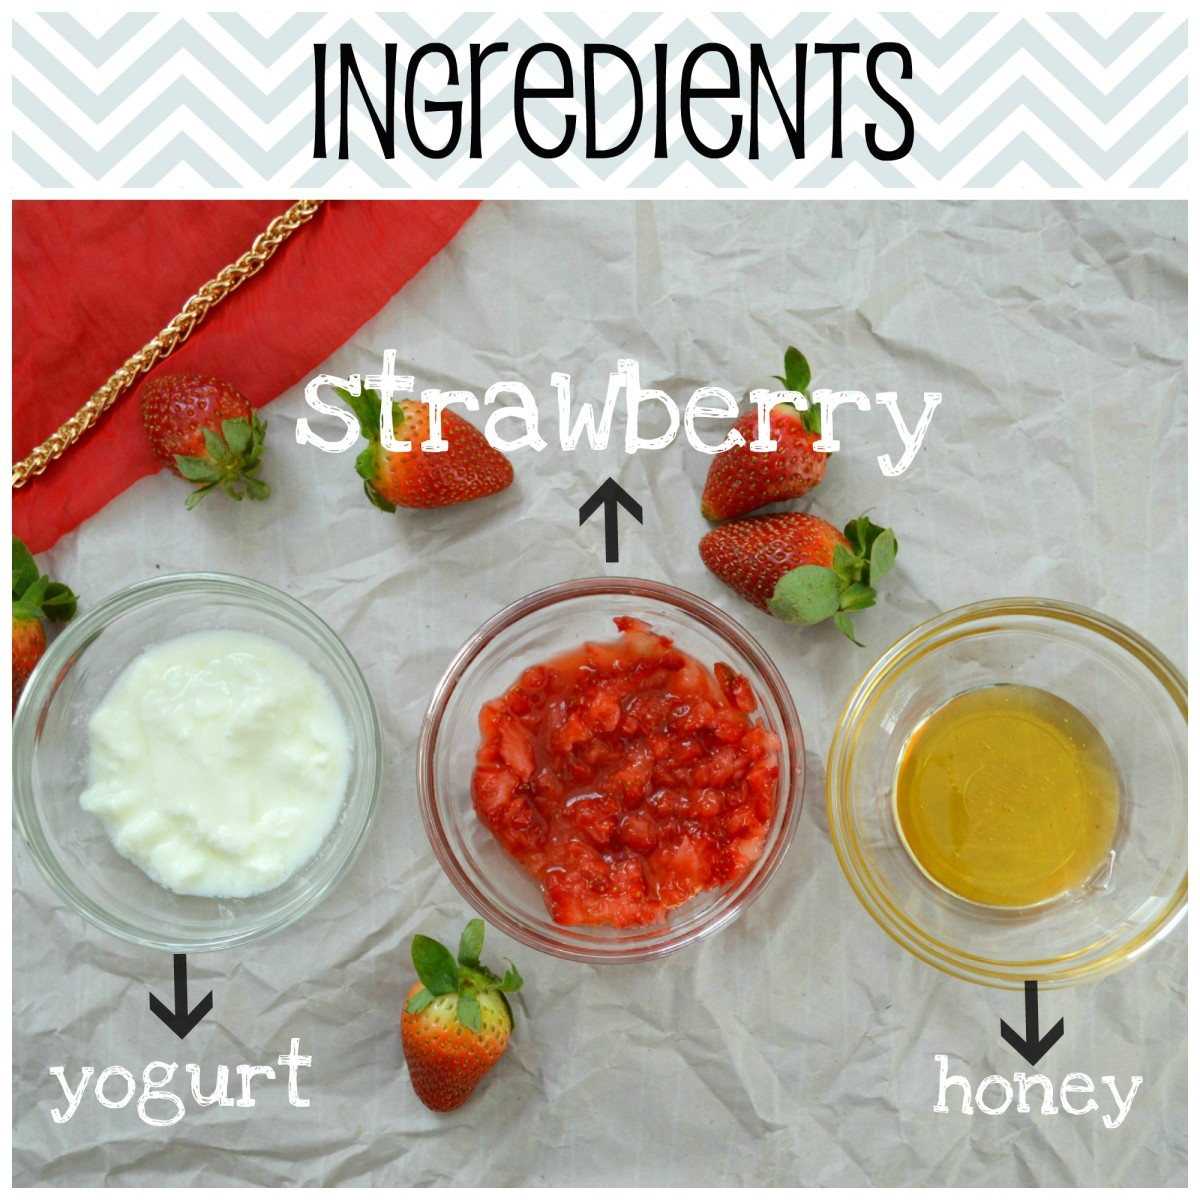 Yogurt and honey are nourishing ingredients that add antibacterial, antioxidant and skin rejuvenating properties to this face mask.